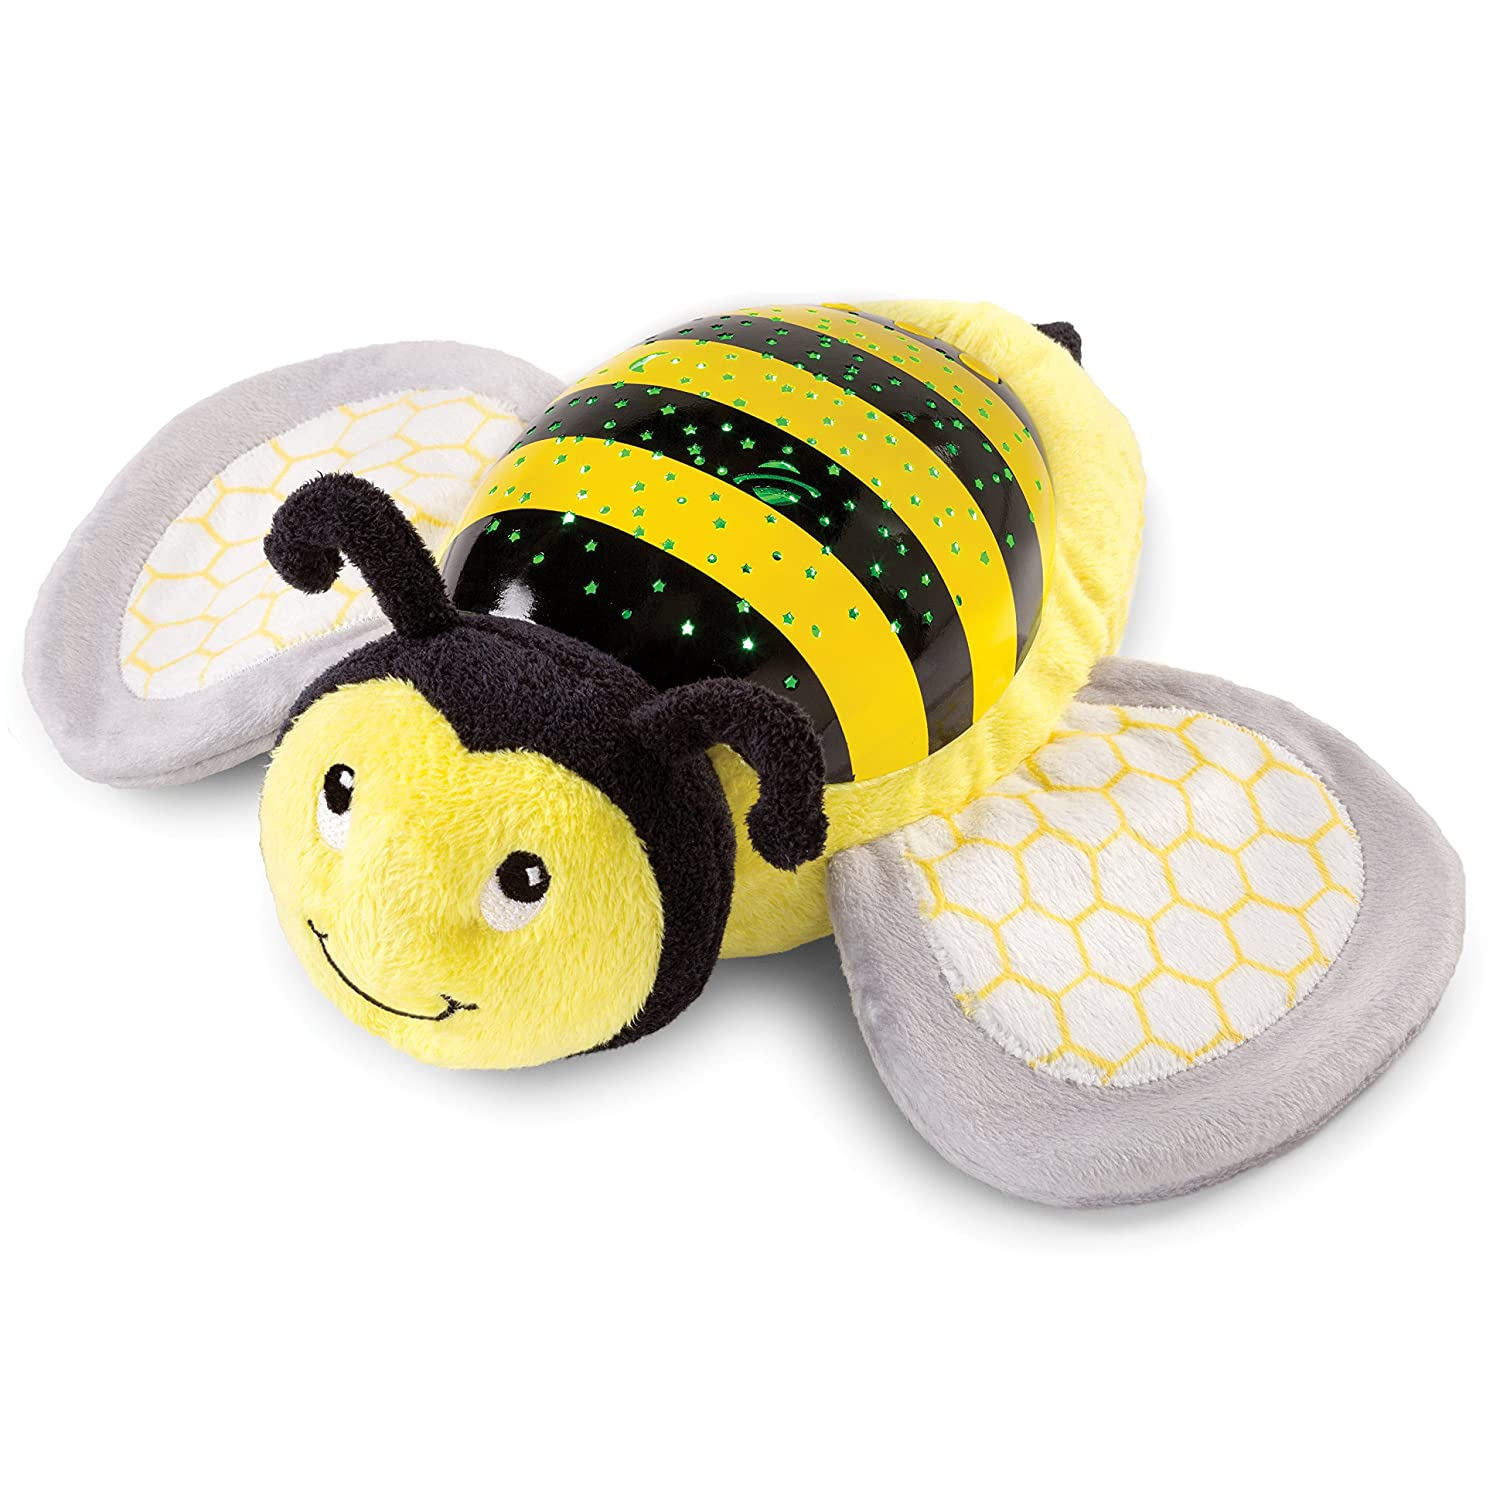 Summer Infant Slumber Buddies Bumble The Bee Peluche con luz de noche